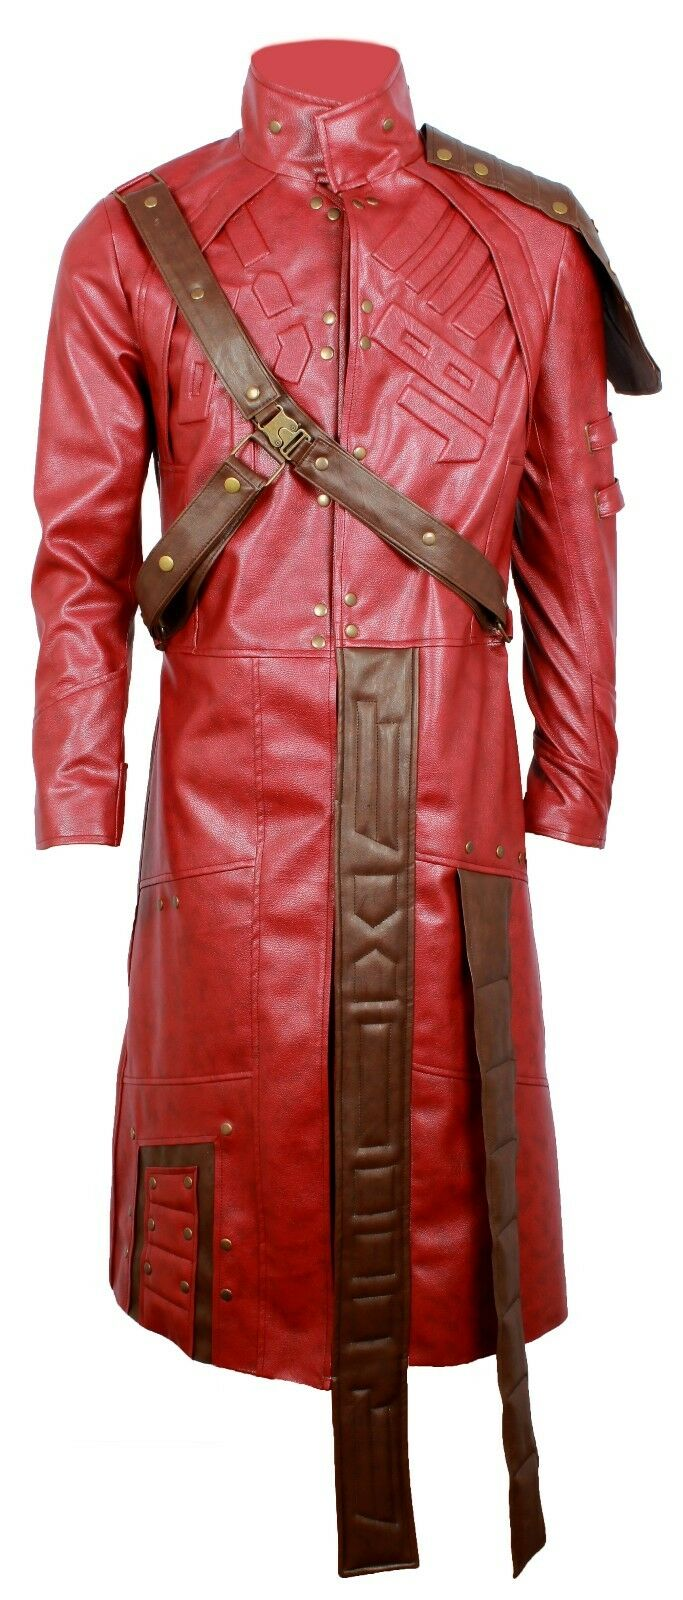 STAR LORD CHRIS PETER GUARDIAN OF THE GALAXY SYNTHETIC leder TRENCH LONG COAT